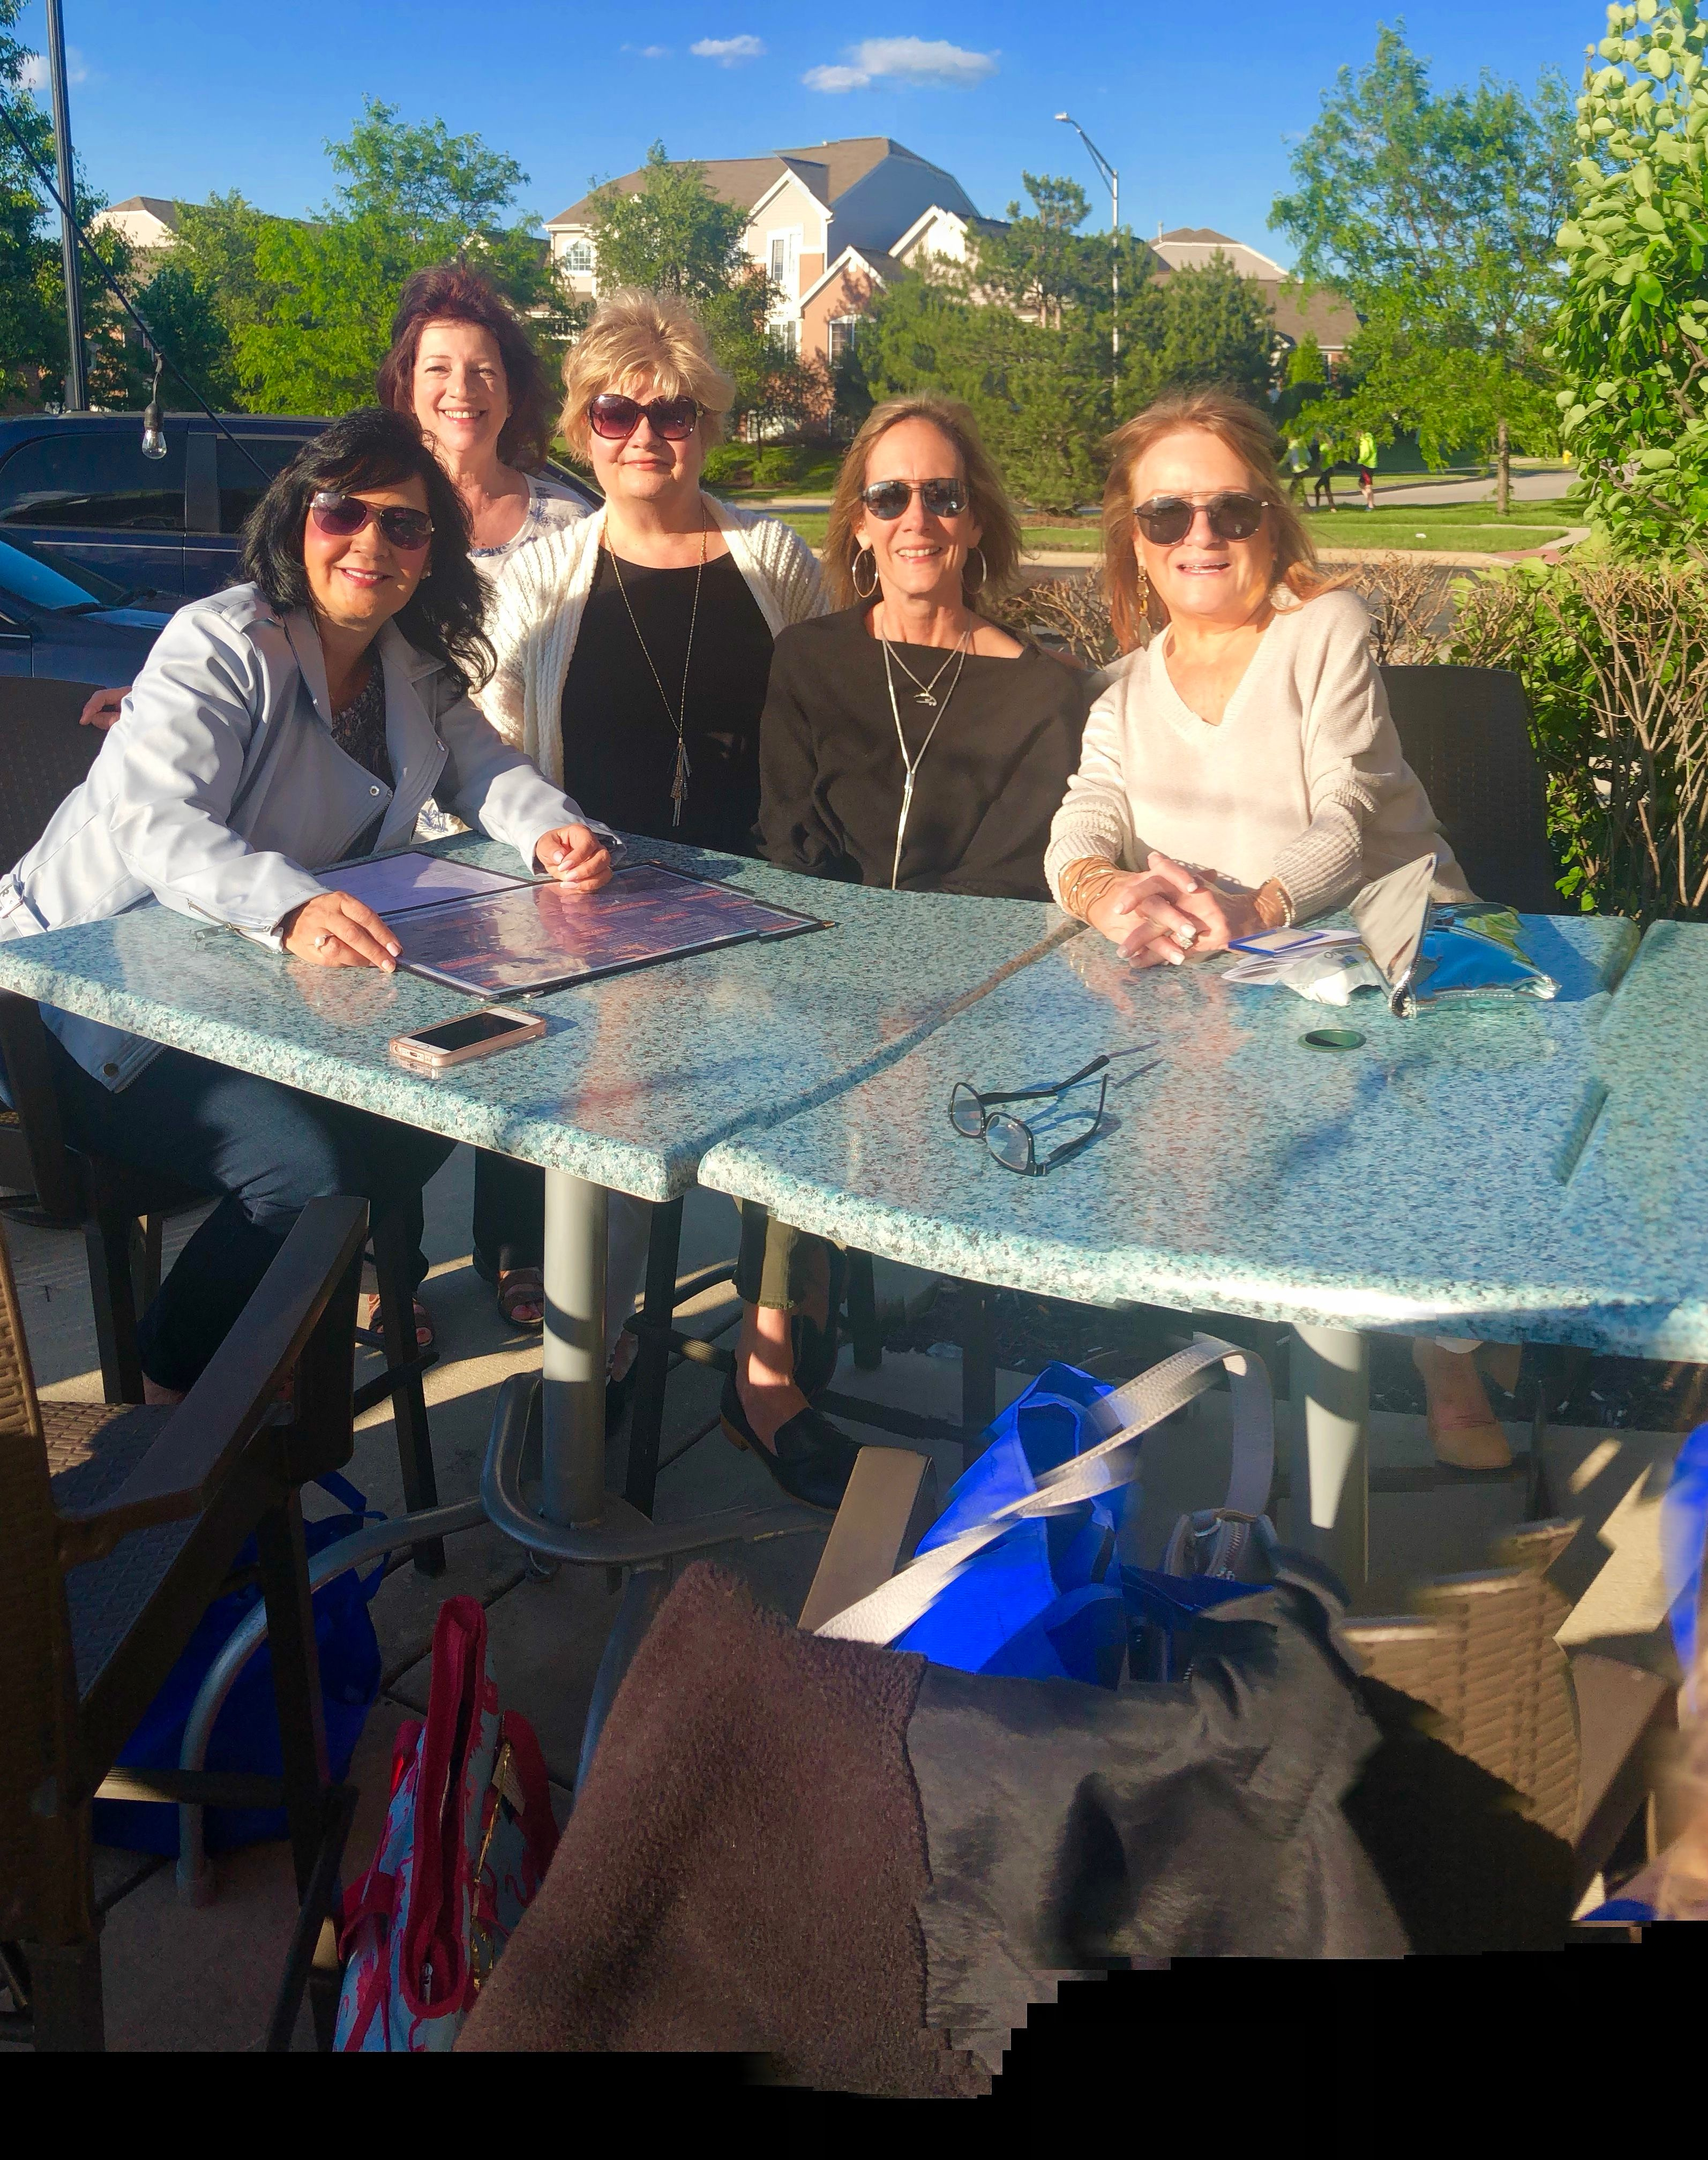 Photos - Orland Park Women Over 50 Meetup Group (Downers